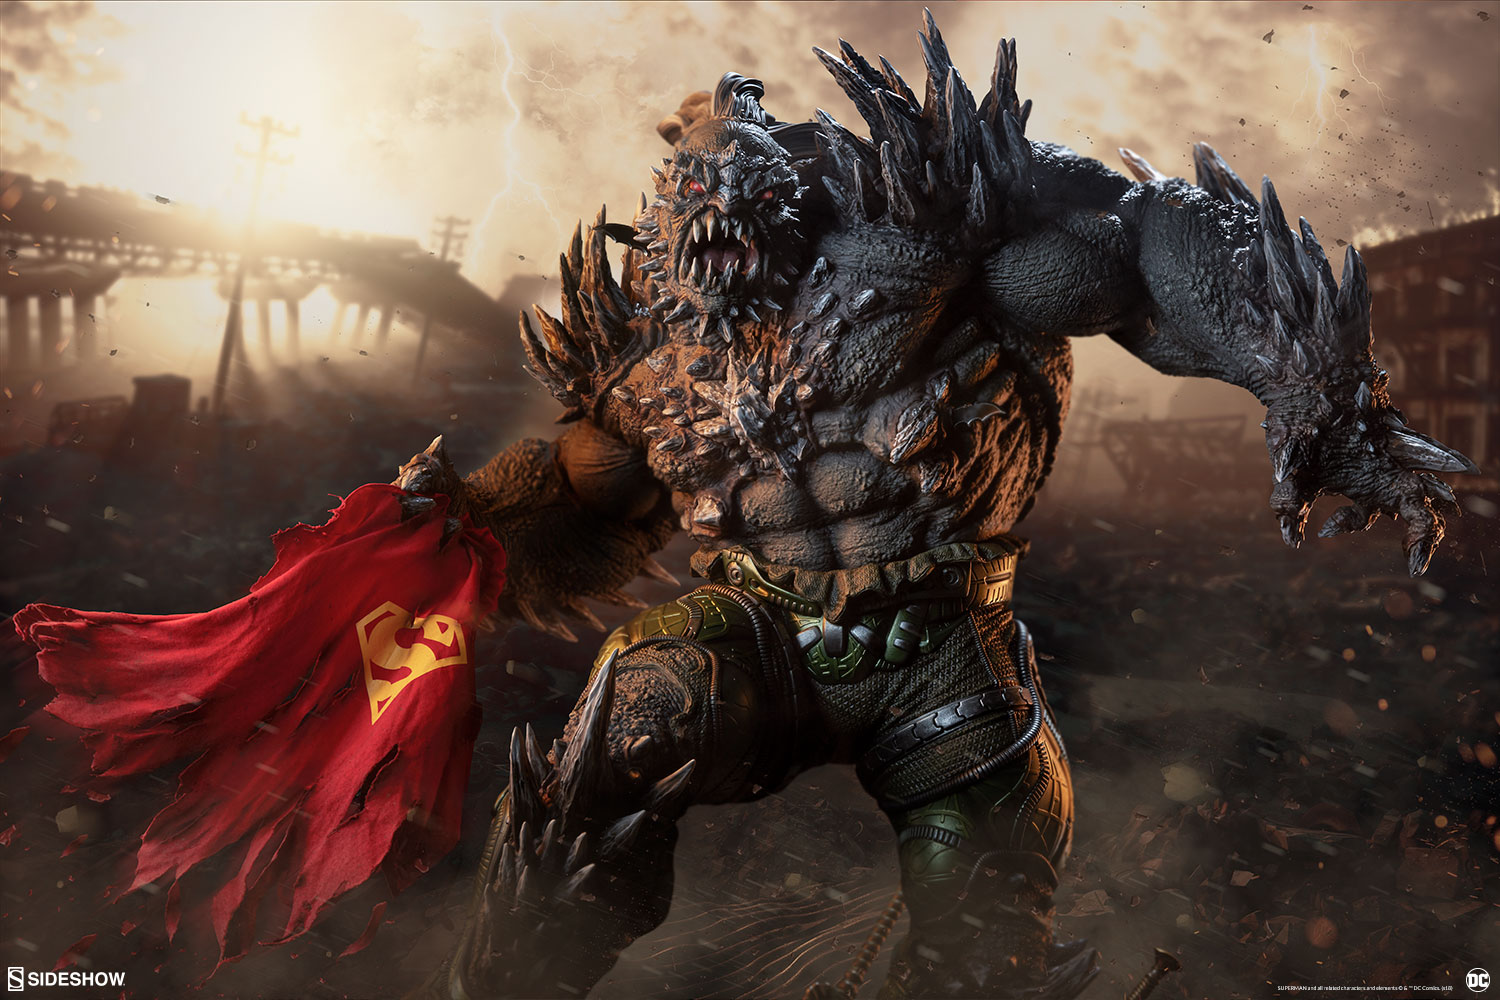 Pre-Order Sideshow DC Comics Doomsday Maquette